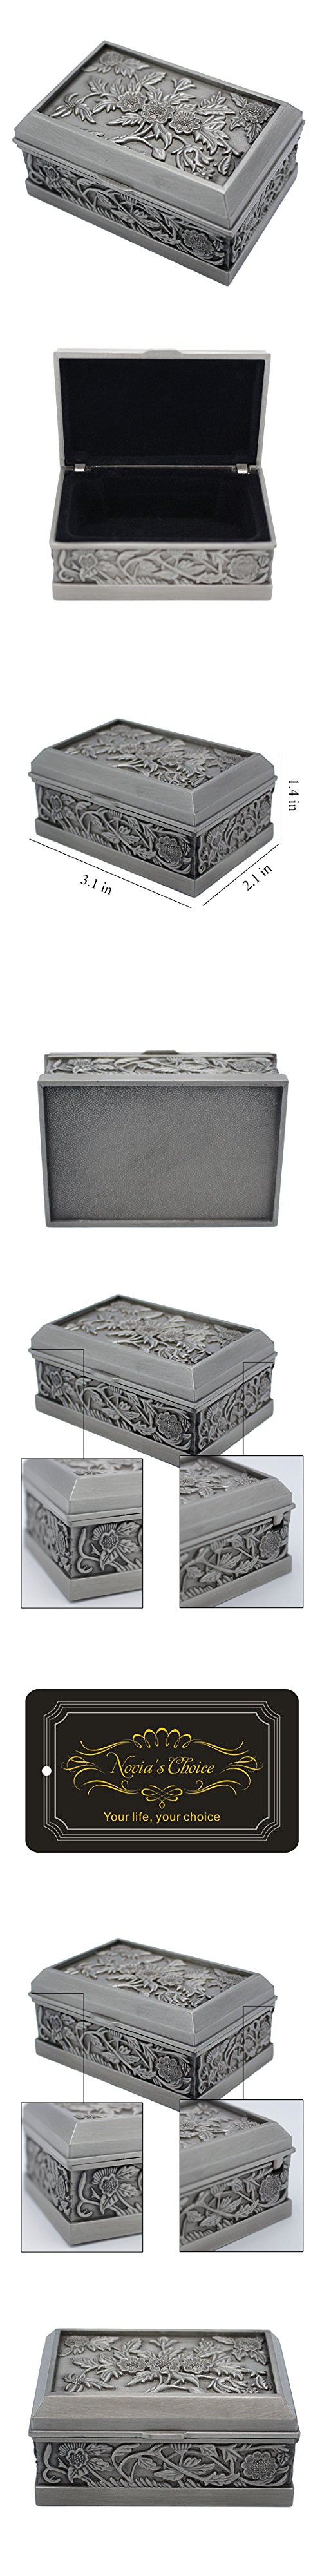 Novias Vintage Antique Flower Engraved Decorative Jewelry Box Ring